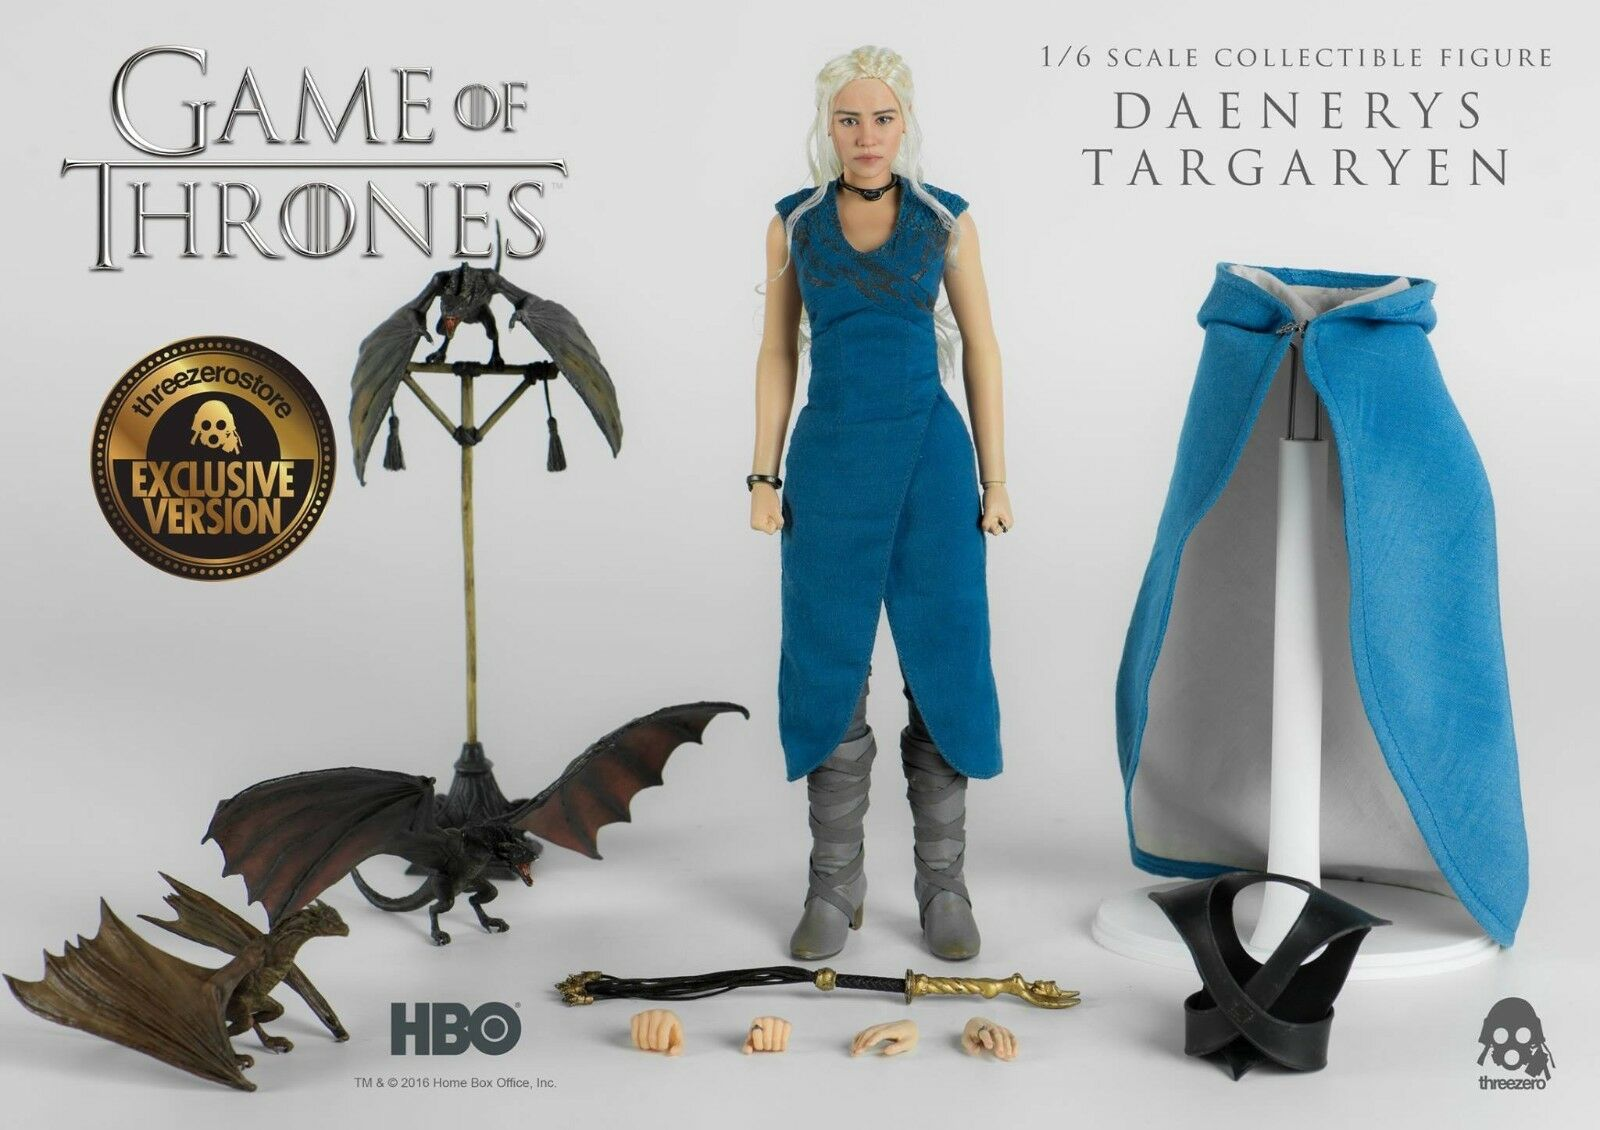 Threezero Exclusive Game of Thrones de Targaryen 1 6 figura con 3 Dragones